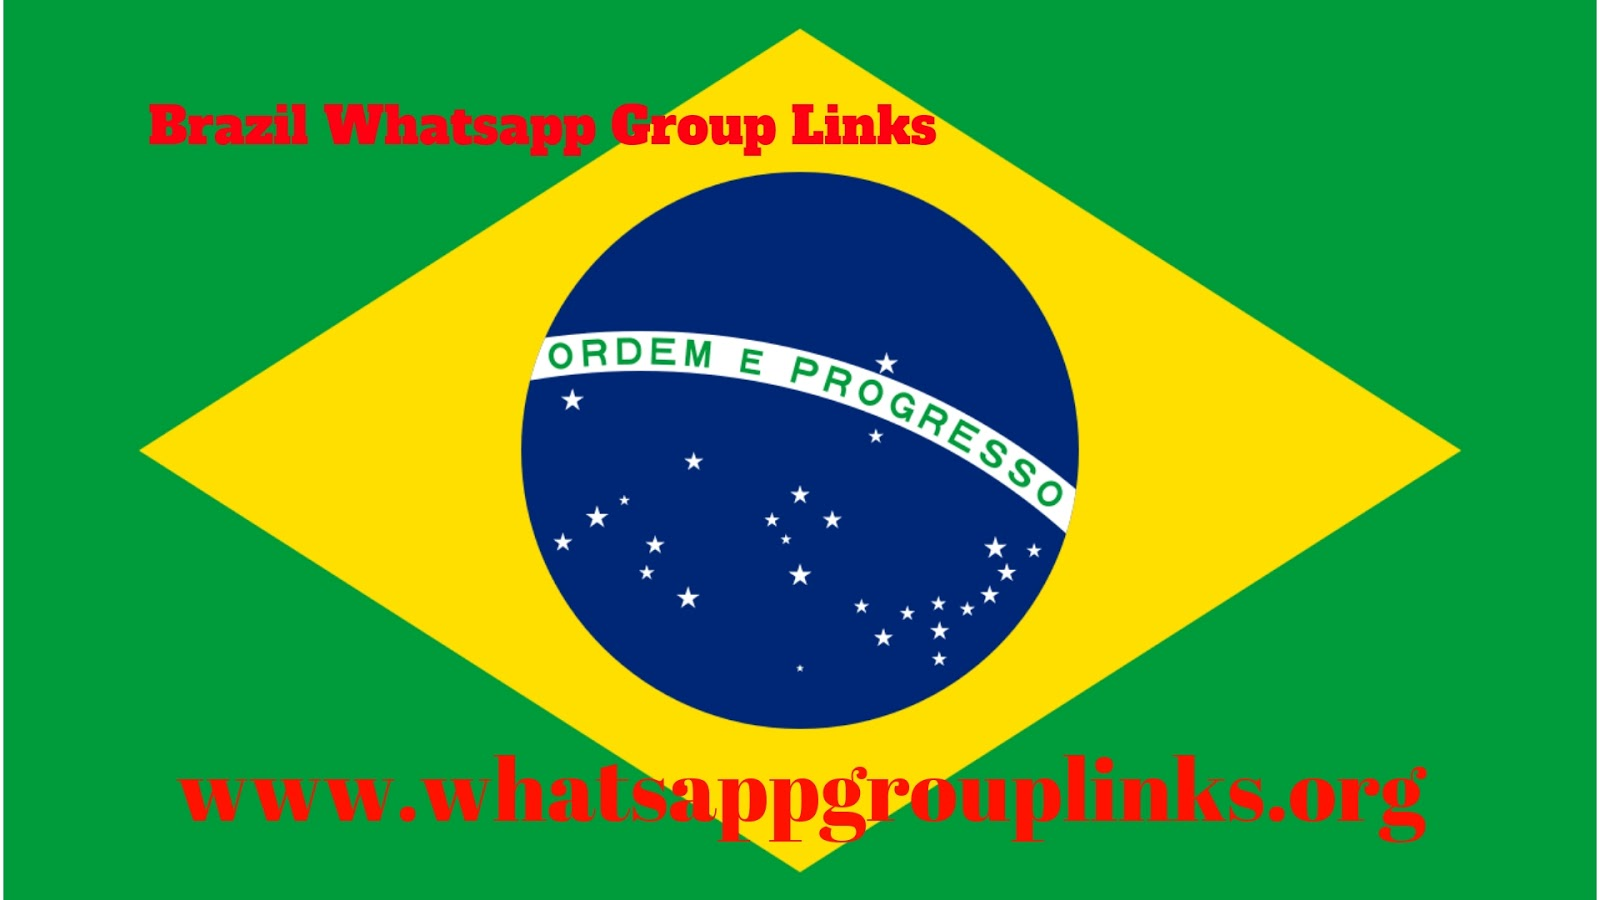 Join Brazil Whatsapp Groups Links List - Whatsapp Group Links